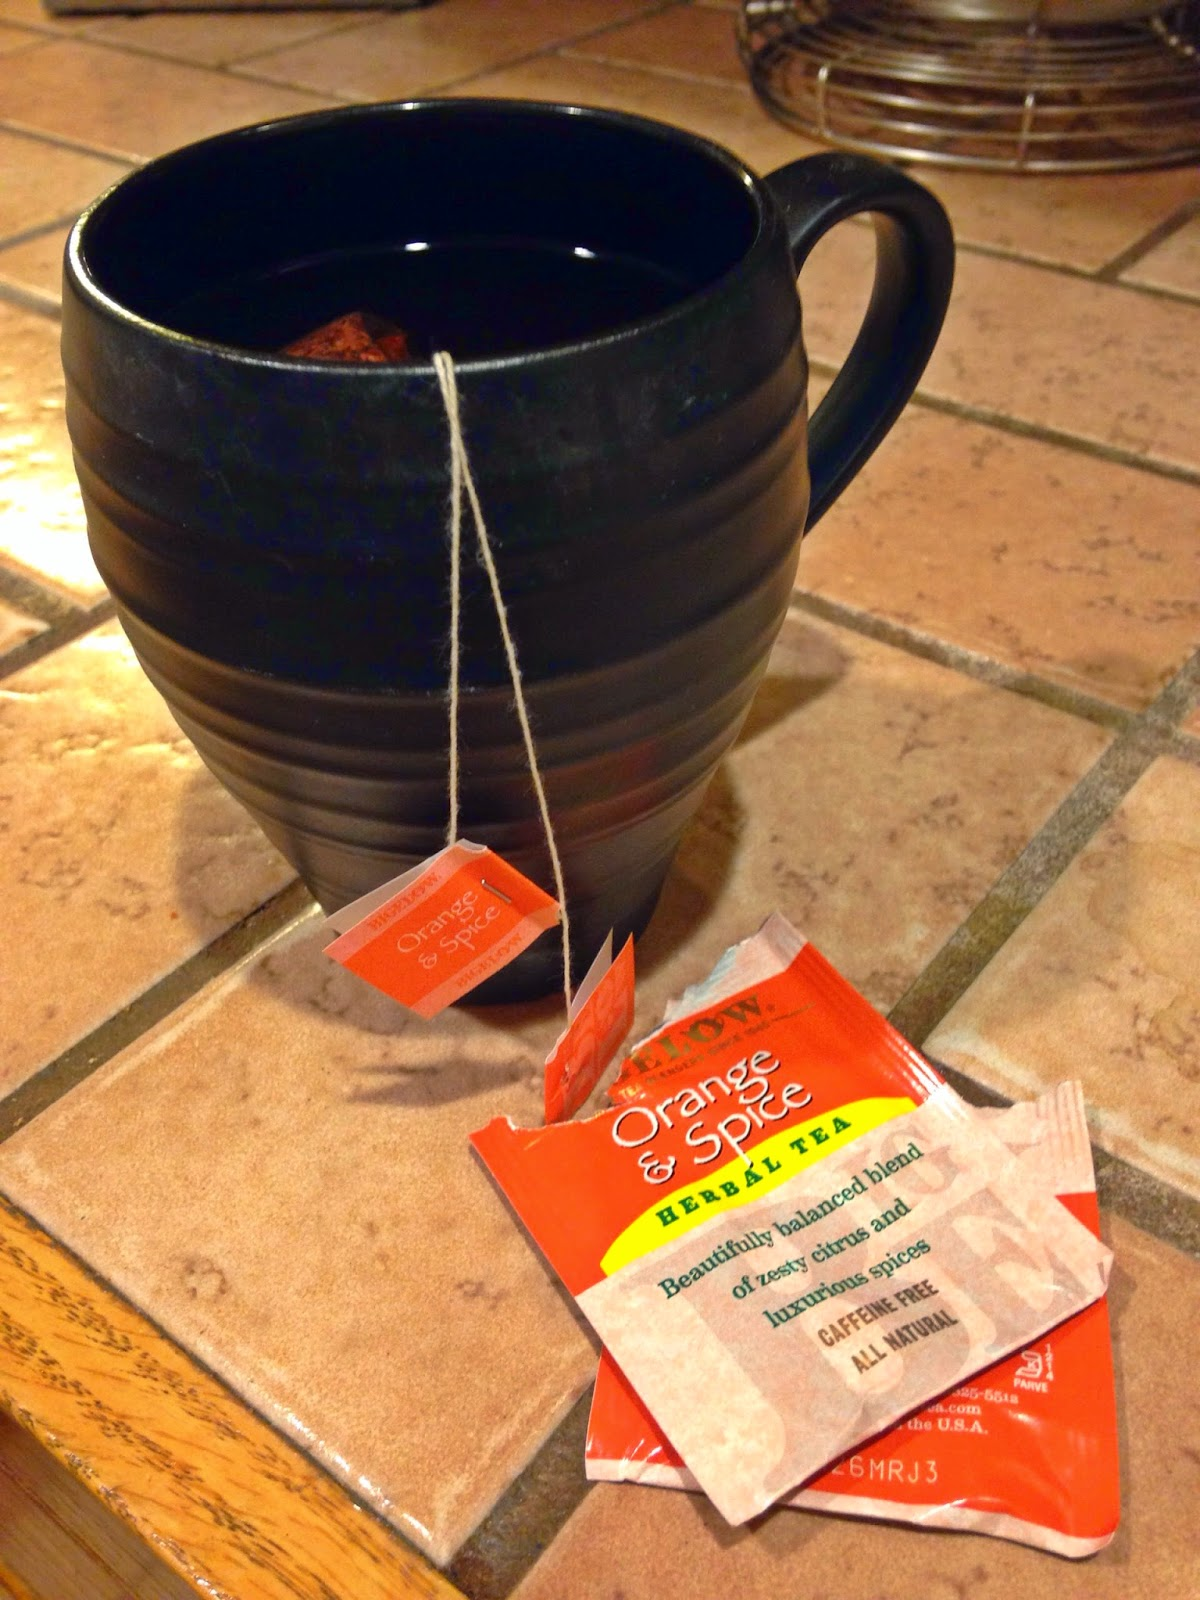 Bigelow's Orange & Spice Tea